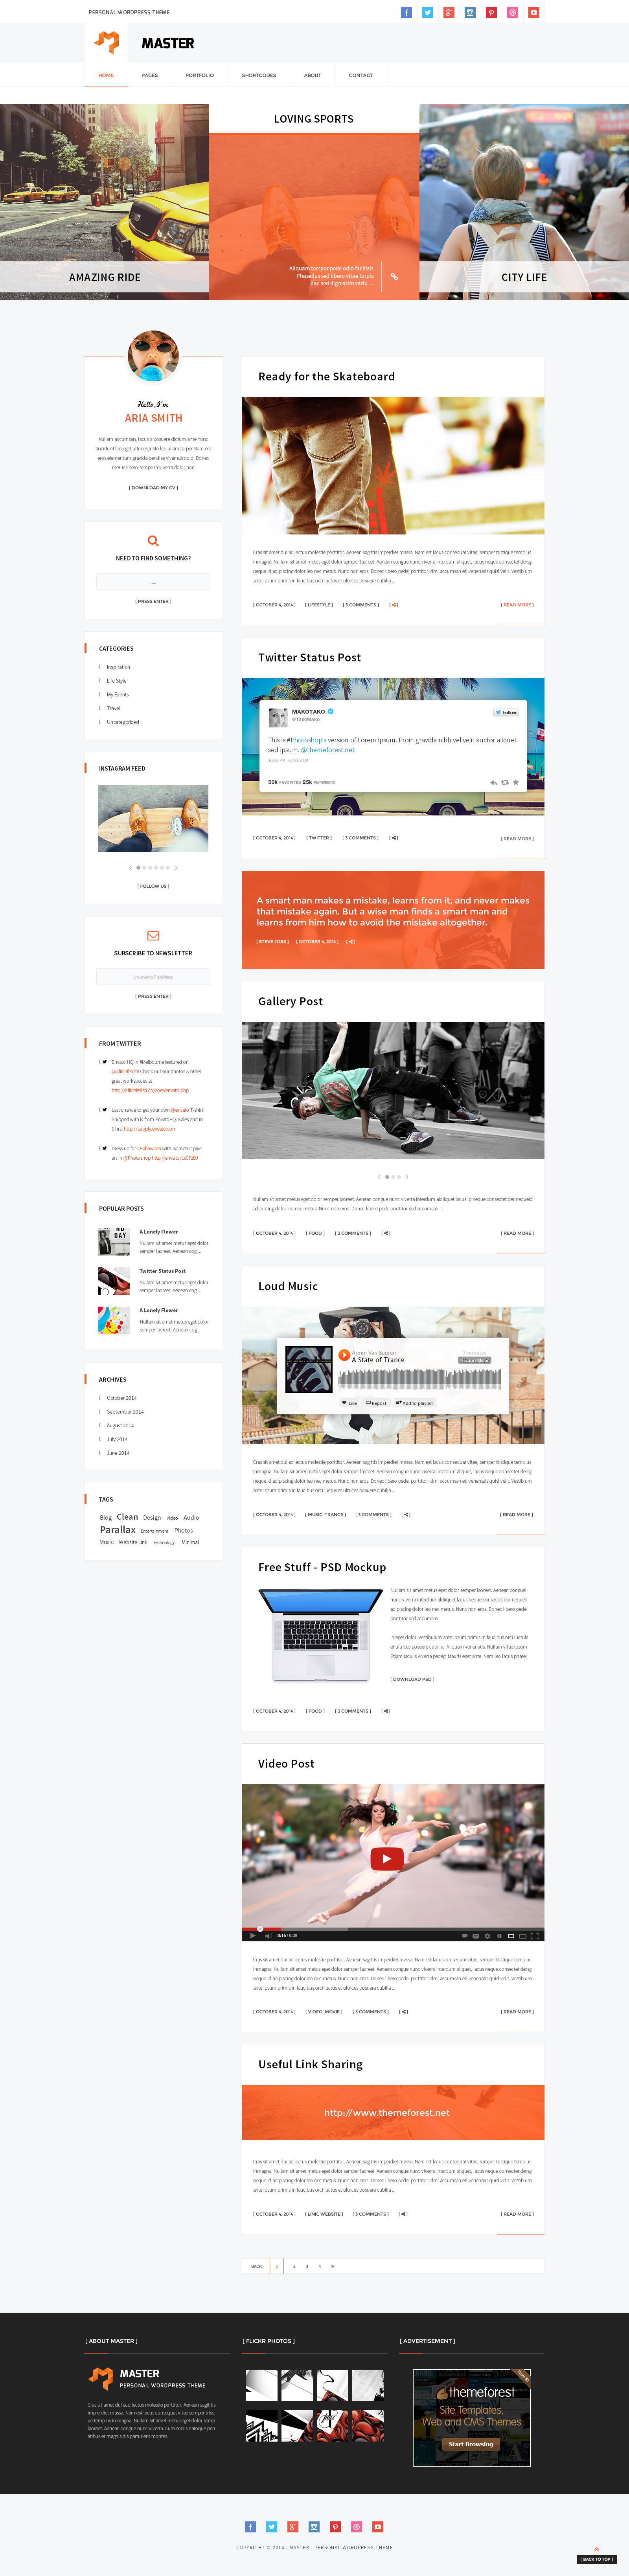 Master - Personal Blog Theme - 1